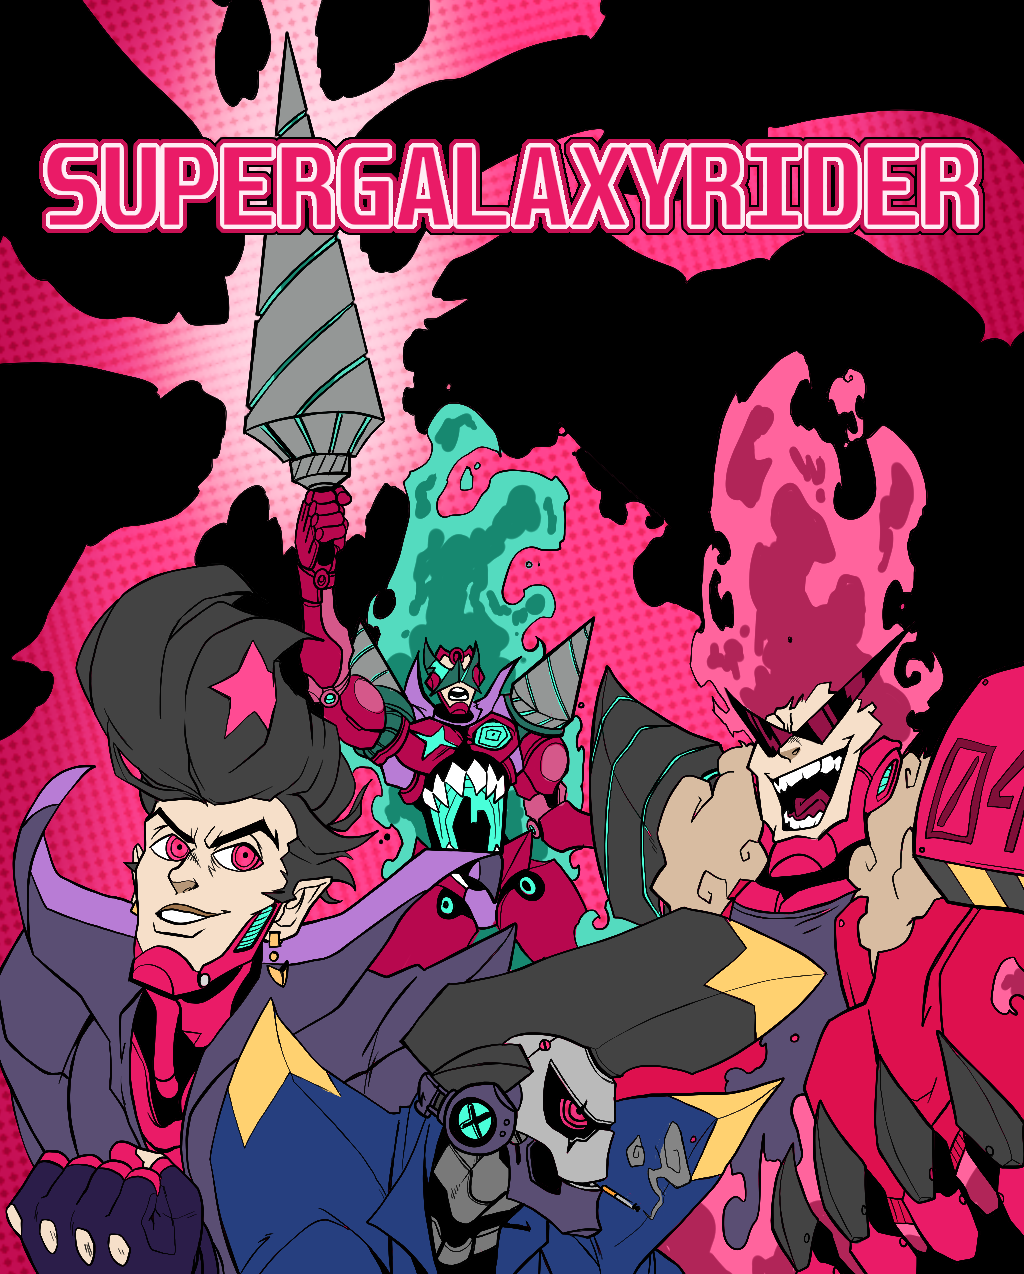 SUPER GALAXY RIDER 2: ELECTRIC BOOGALOO